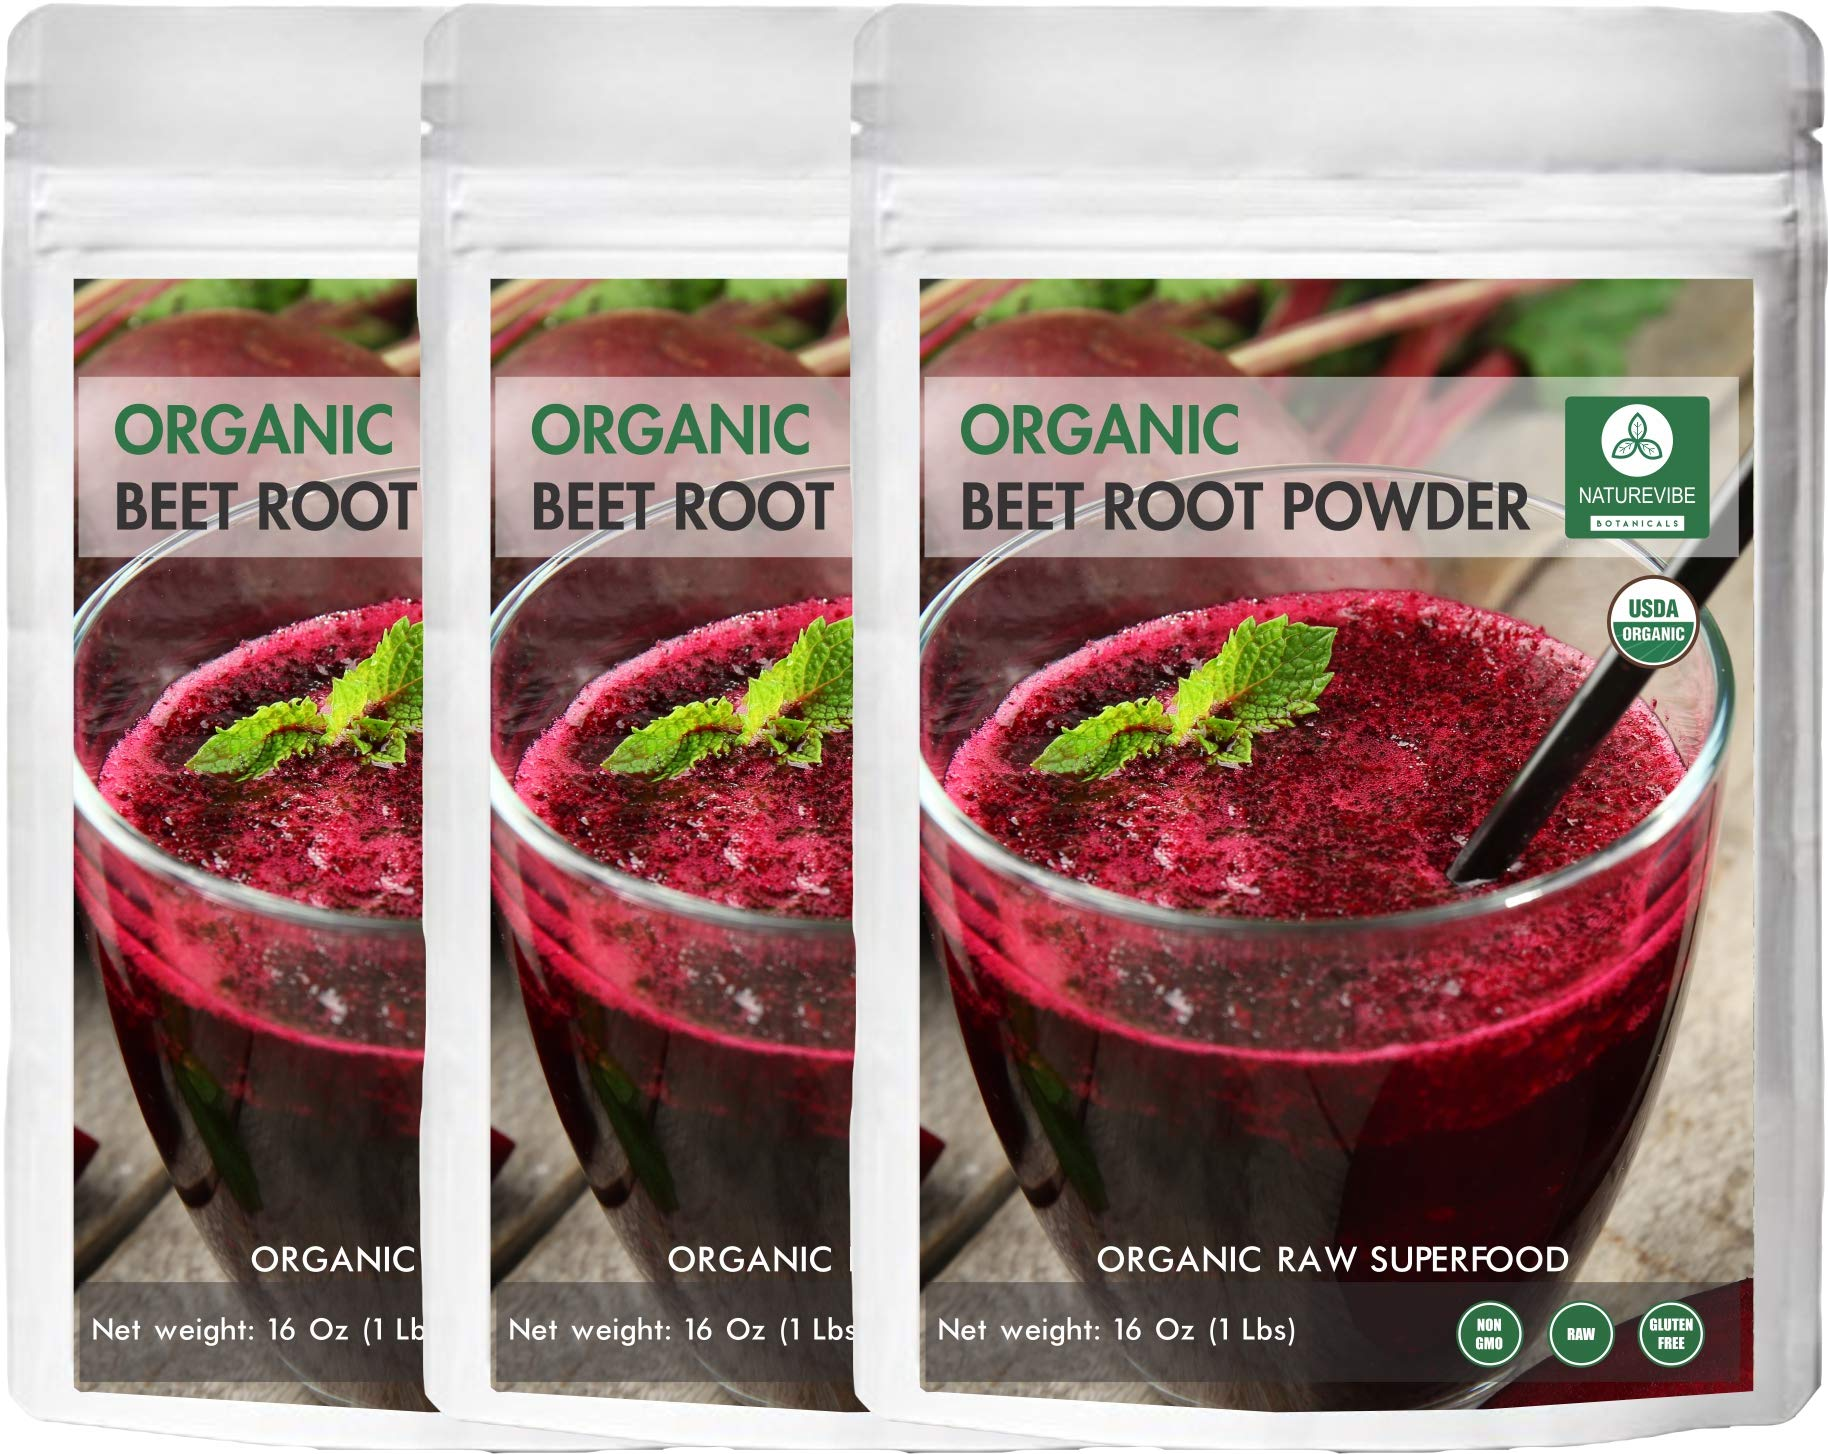 Organic Beet Root Powder, 3 lbs (3 Packs of 1lb Each) by Naturevibe Botanicals, Raw & Non-GMO | Nitric Oxide Booster | Boost Stamina and Increases Energy by Naturevibe Botanicals